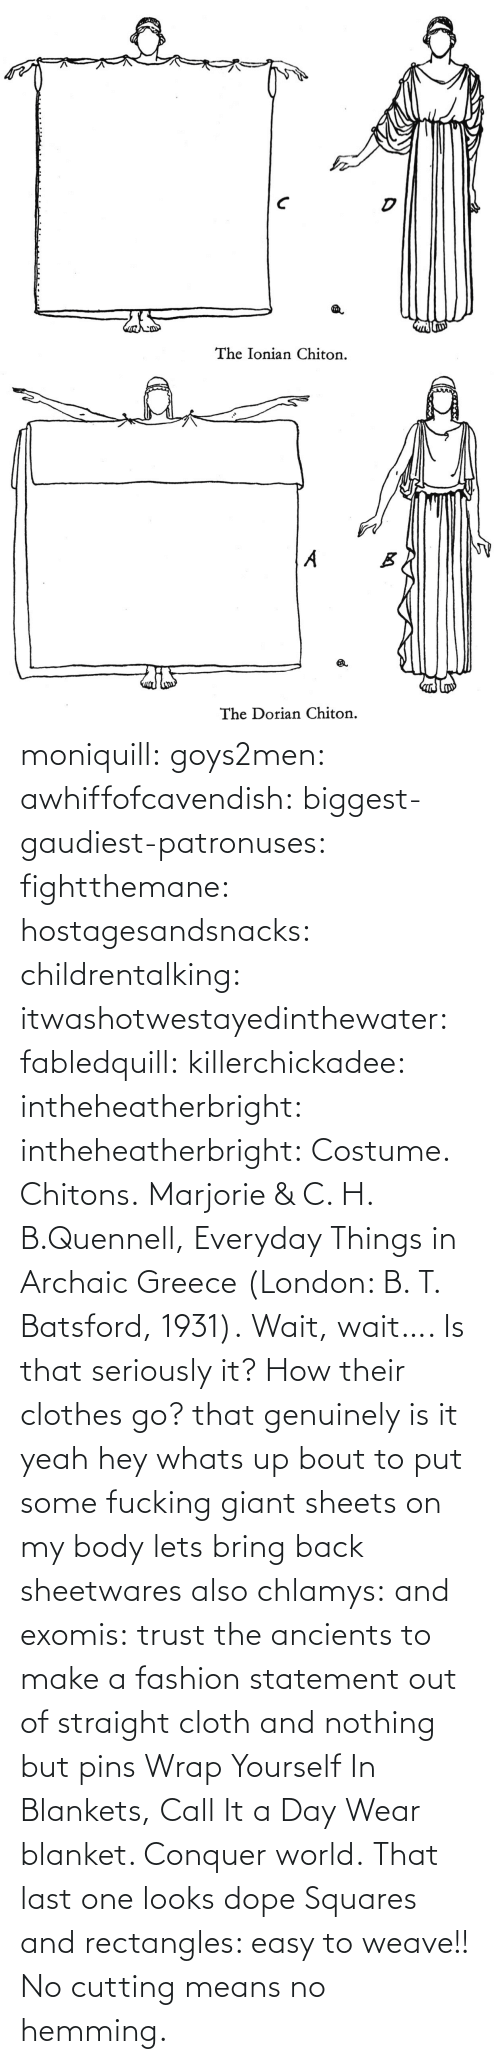 Weave: moniquill: goys2men:  awhiffofcavendish:  biggest-gaudiest-patronuses:  fightthemane:  hostagesandsnacks:  childrentalking:  itwashotwestayedinthewater:  fabledquill:  killerchickadee:  intheheatherbright:  intheheatherbright:  Costume. Chitons.  Marjorie & C. H. B.Quennell, Everyday Things in Archaic Greece (London: B. T. Batsford, 1931).  Wait, wait…. Is that seriously it? How their clothes go?  that genuinely is it  yeah hey whats up bout to put some fucking giant sheets on my body  lets bring back sheetwares  also chlamys: and exomis:  trust the ancients to make a fashion statement out of straight cloth and nothing but pins  Wrap Yourself In Blankets, Call It a Day  Wear blanket. Conquer world.   That last one looks dope    Squares and rectangles: easy to weave!! No cutting means no hemming.